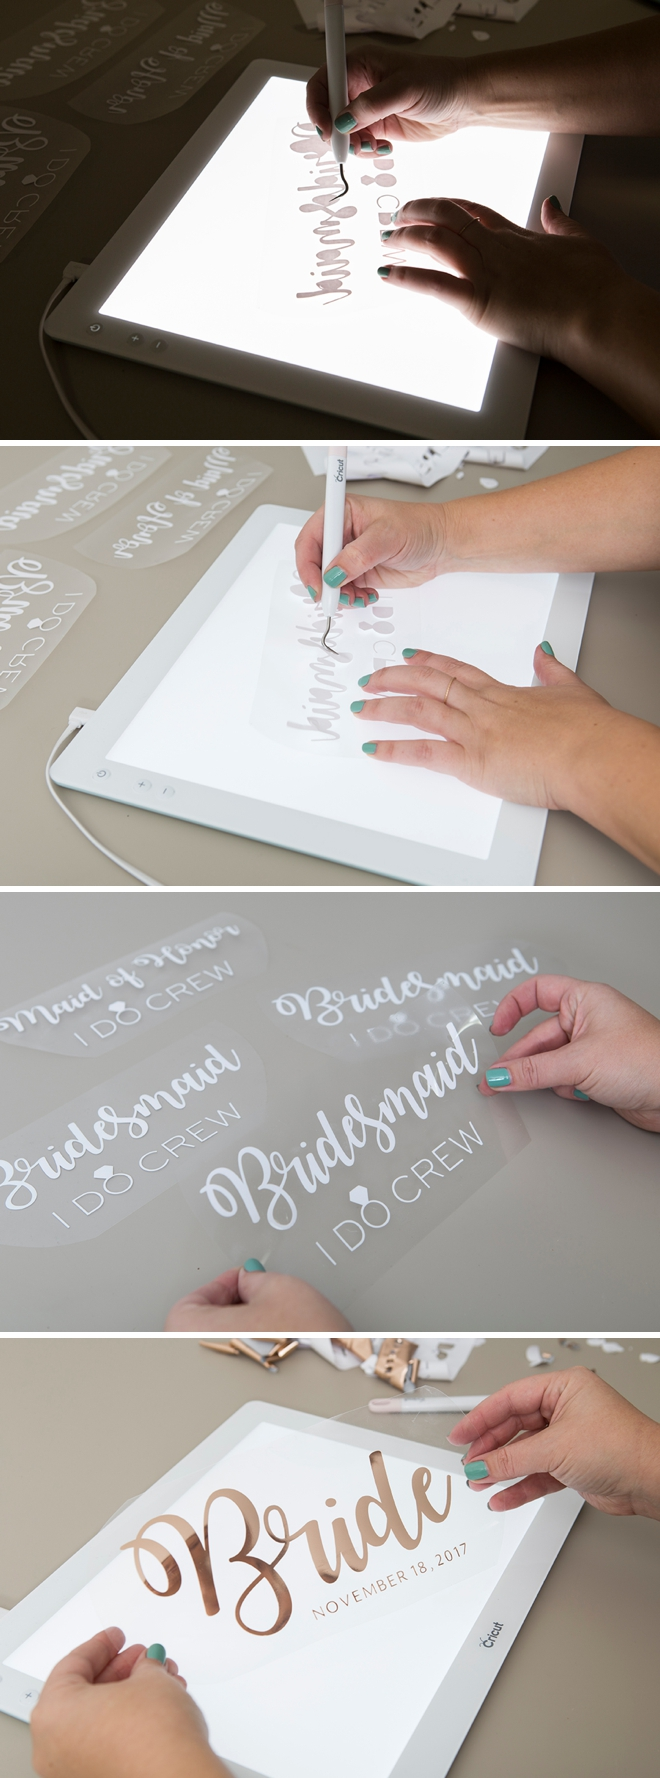 Weed your Cricut Iron-on designs over the Cricut BrightPad!